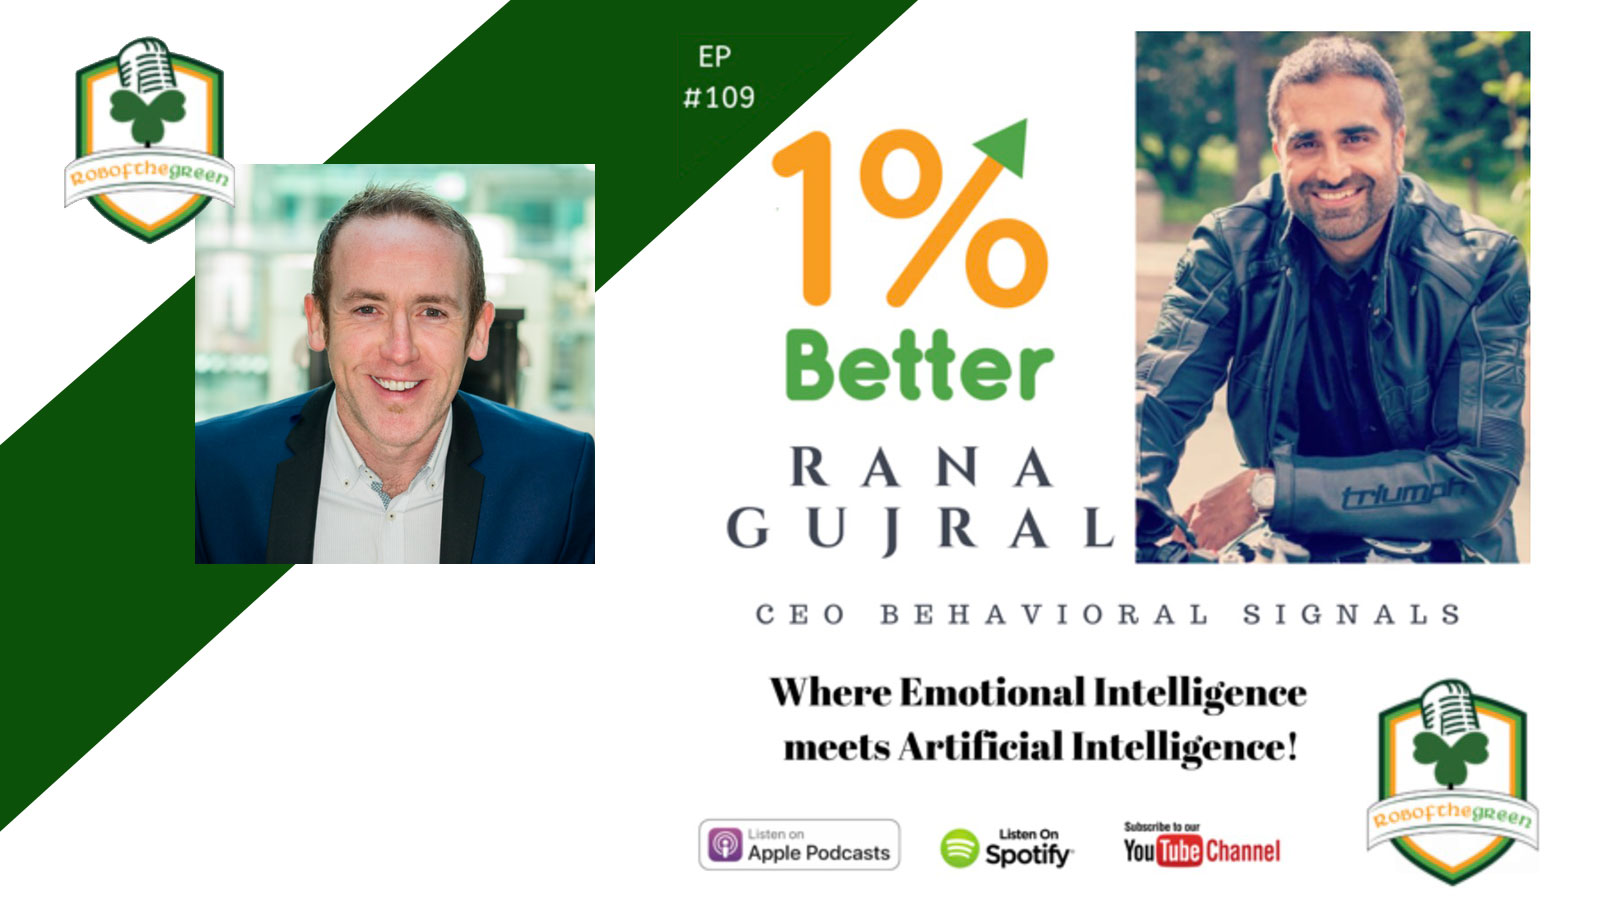 Rob of the Green interviews Rana Gujral, CEO at Behavioral Signals